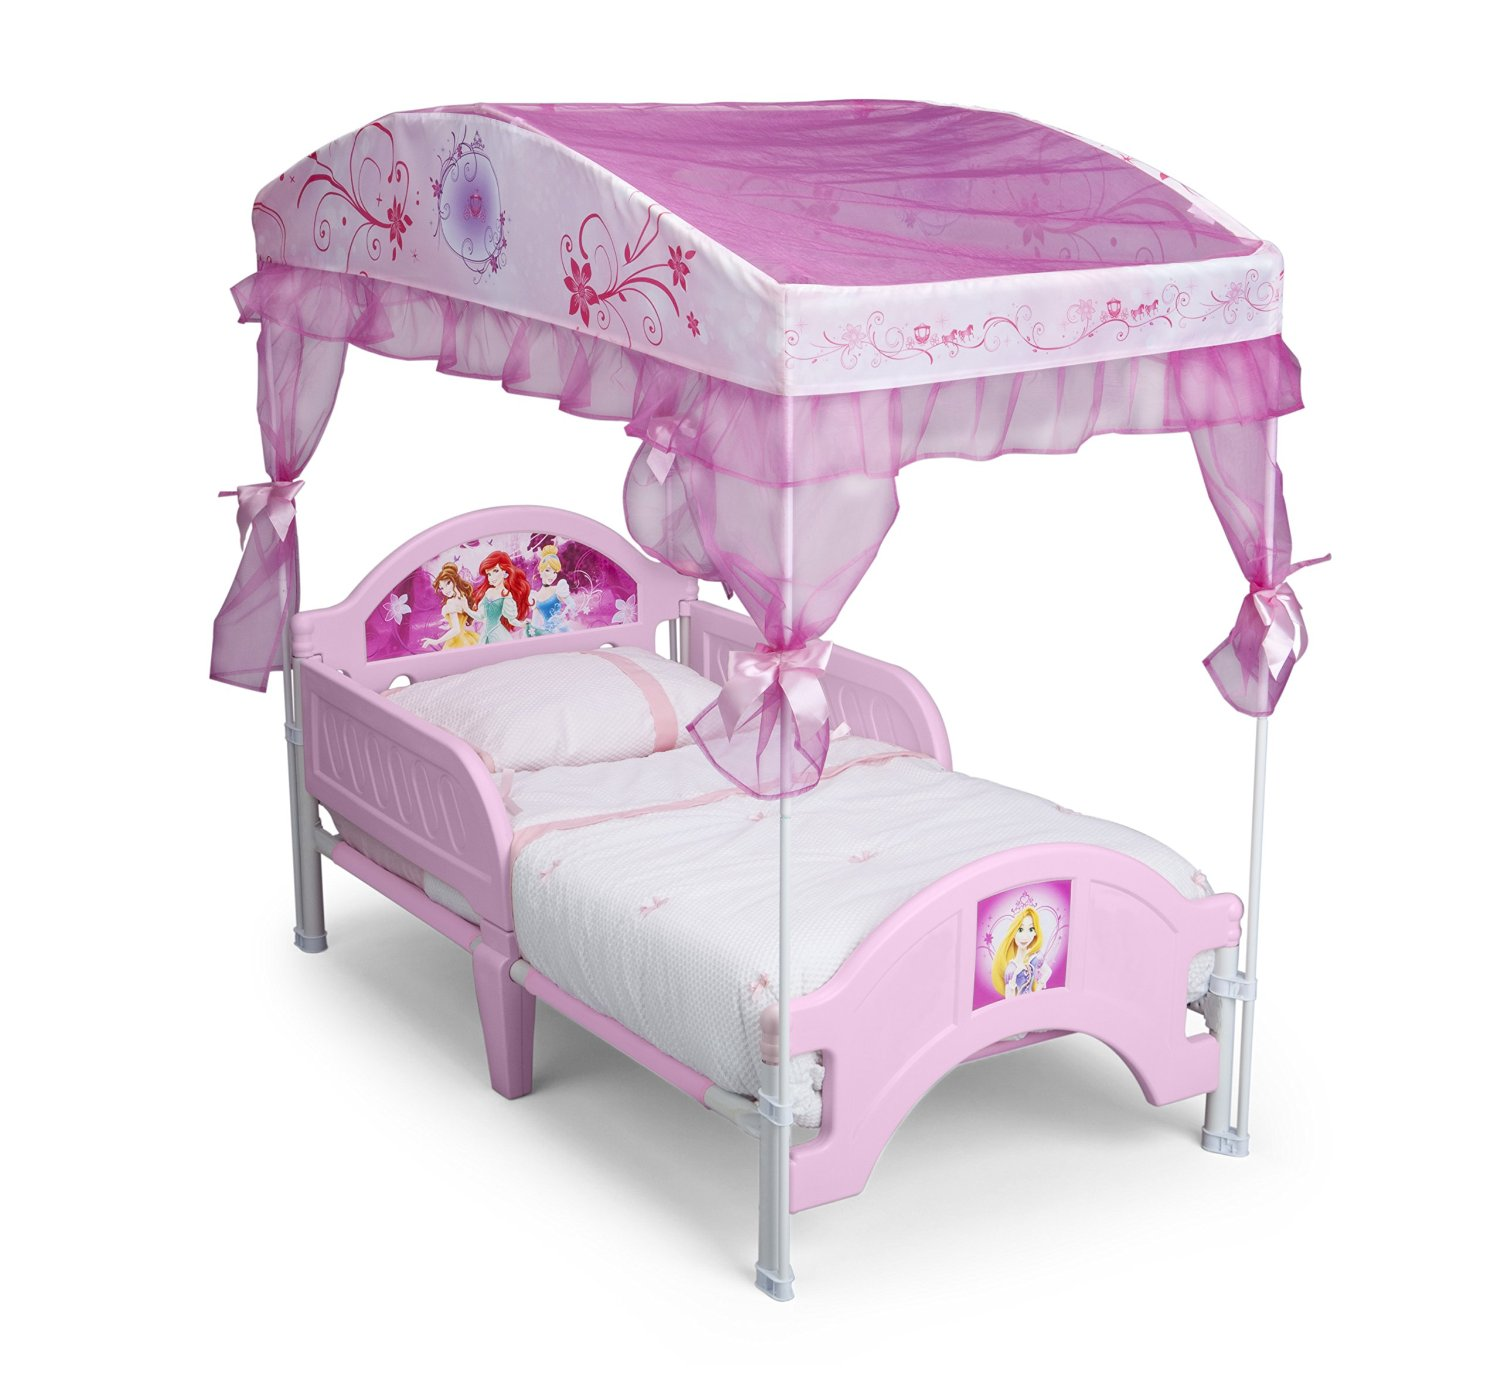 Cheap Toddler Beds Princess Bed With Canopy And Sc 1 St Cool Toddler Beds Review